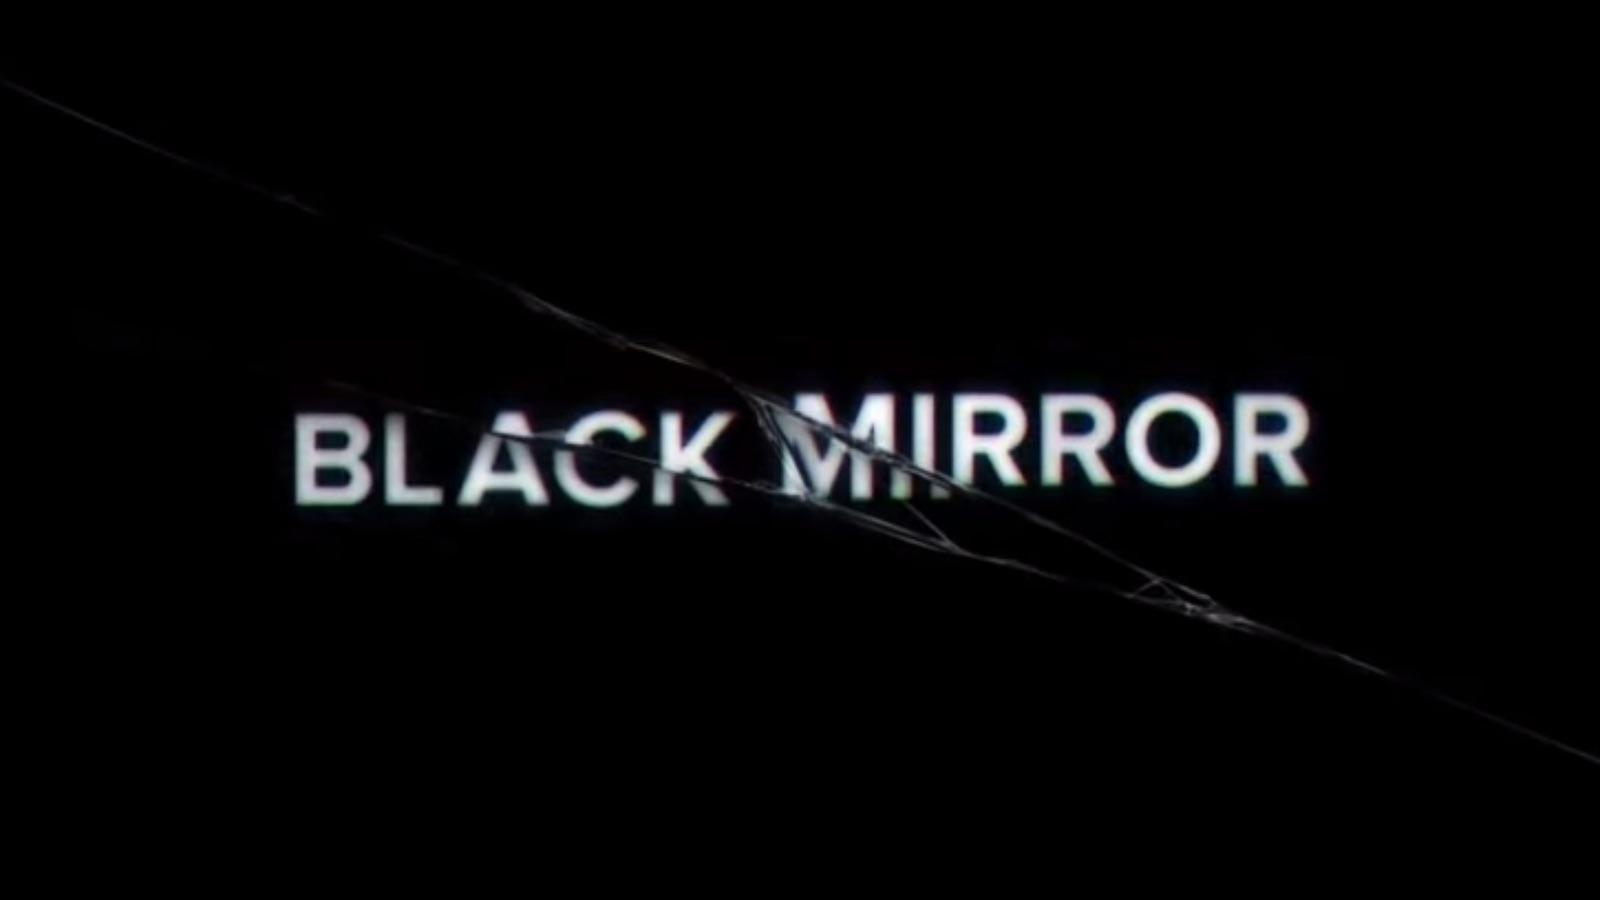 black mirror - photo #26